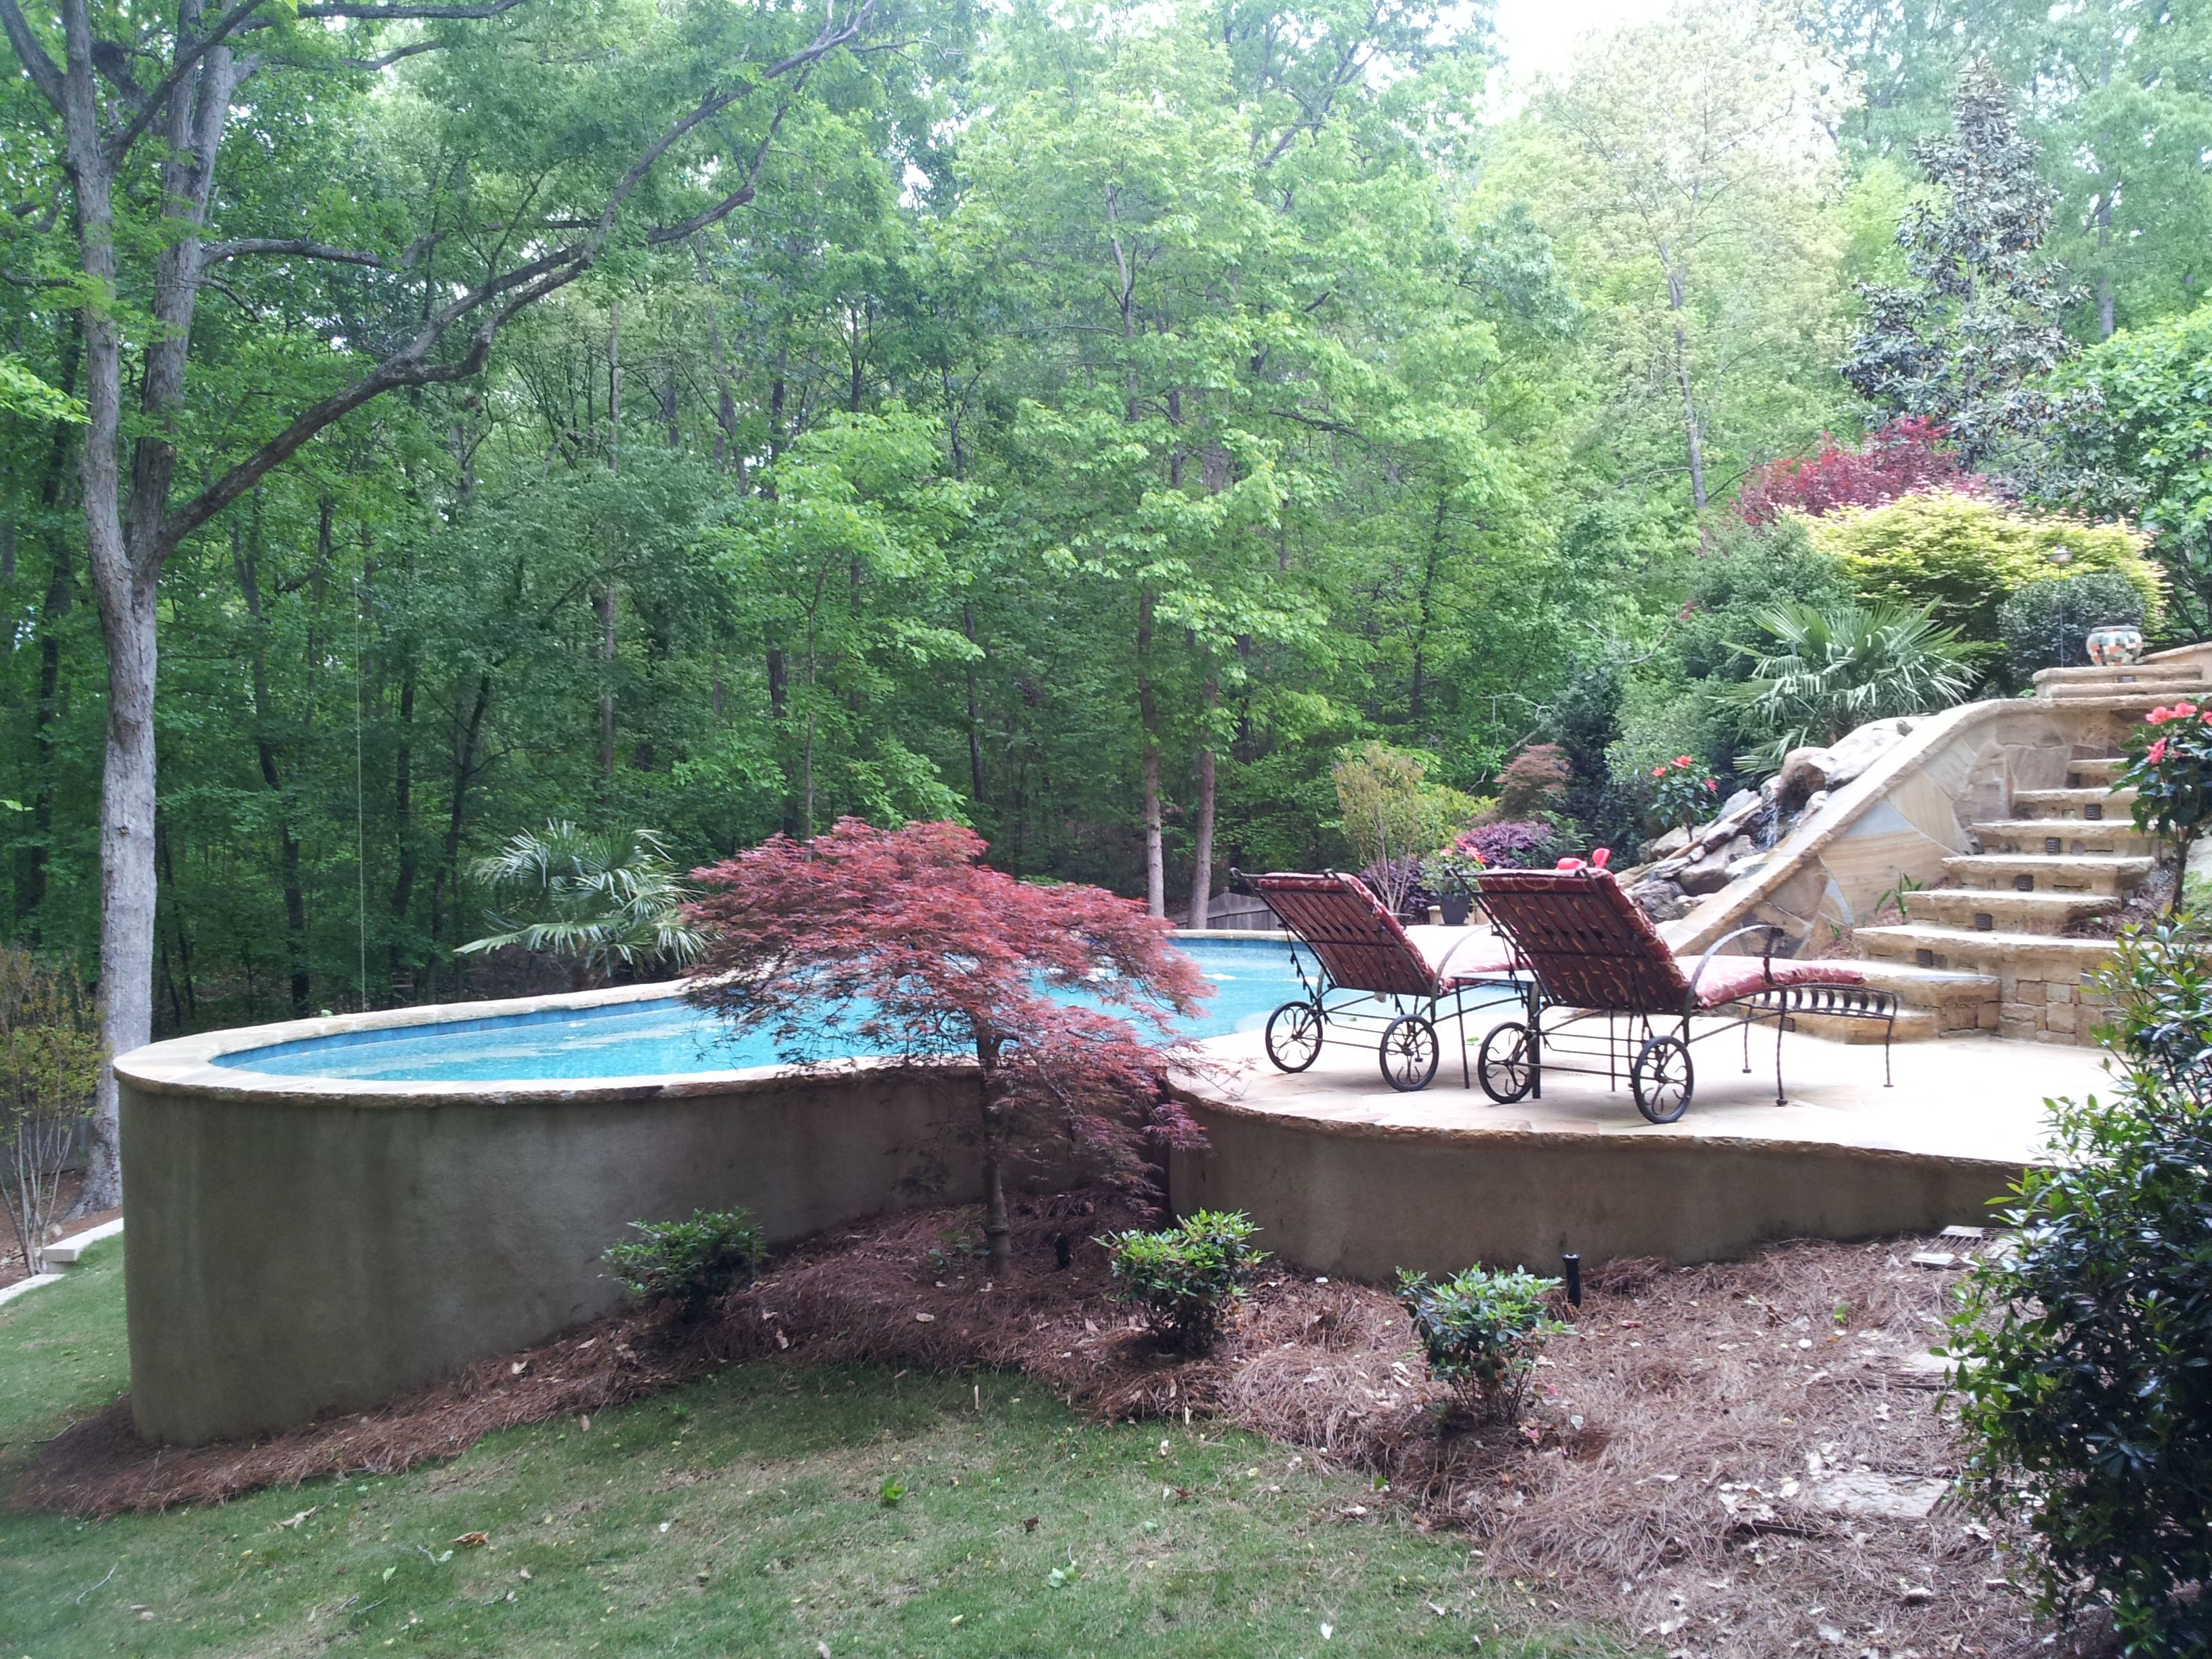 free form pool held by concrete retaining wall